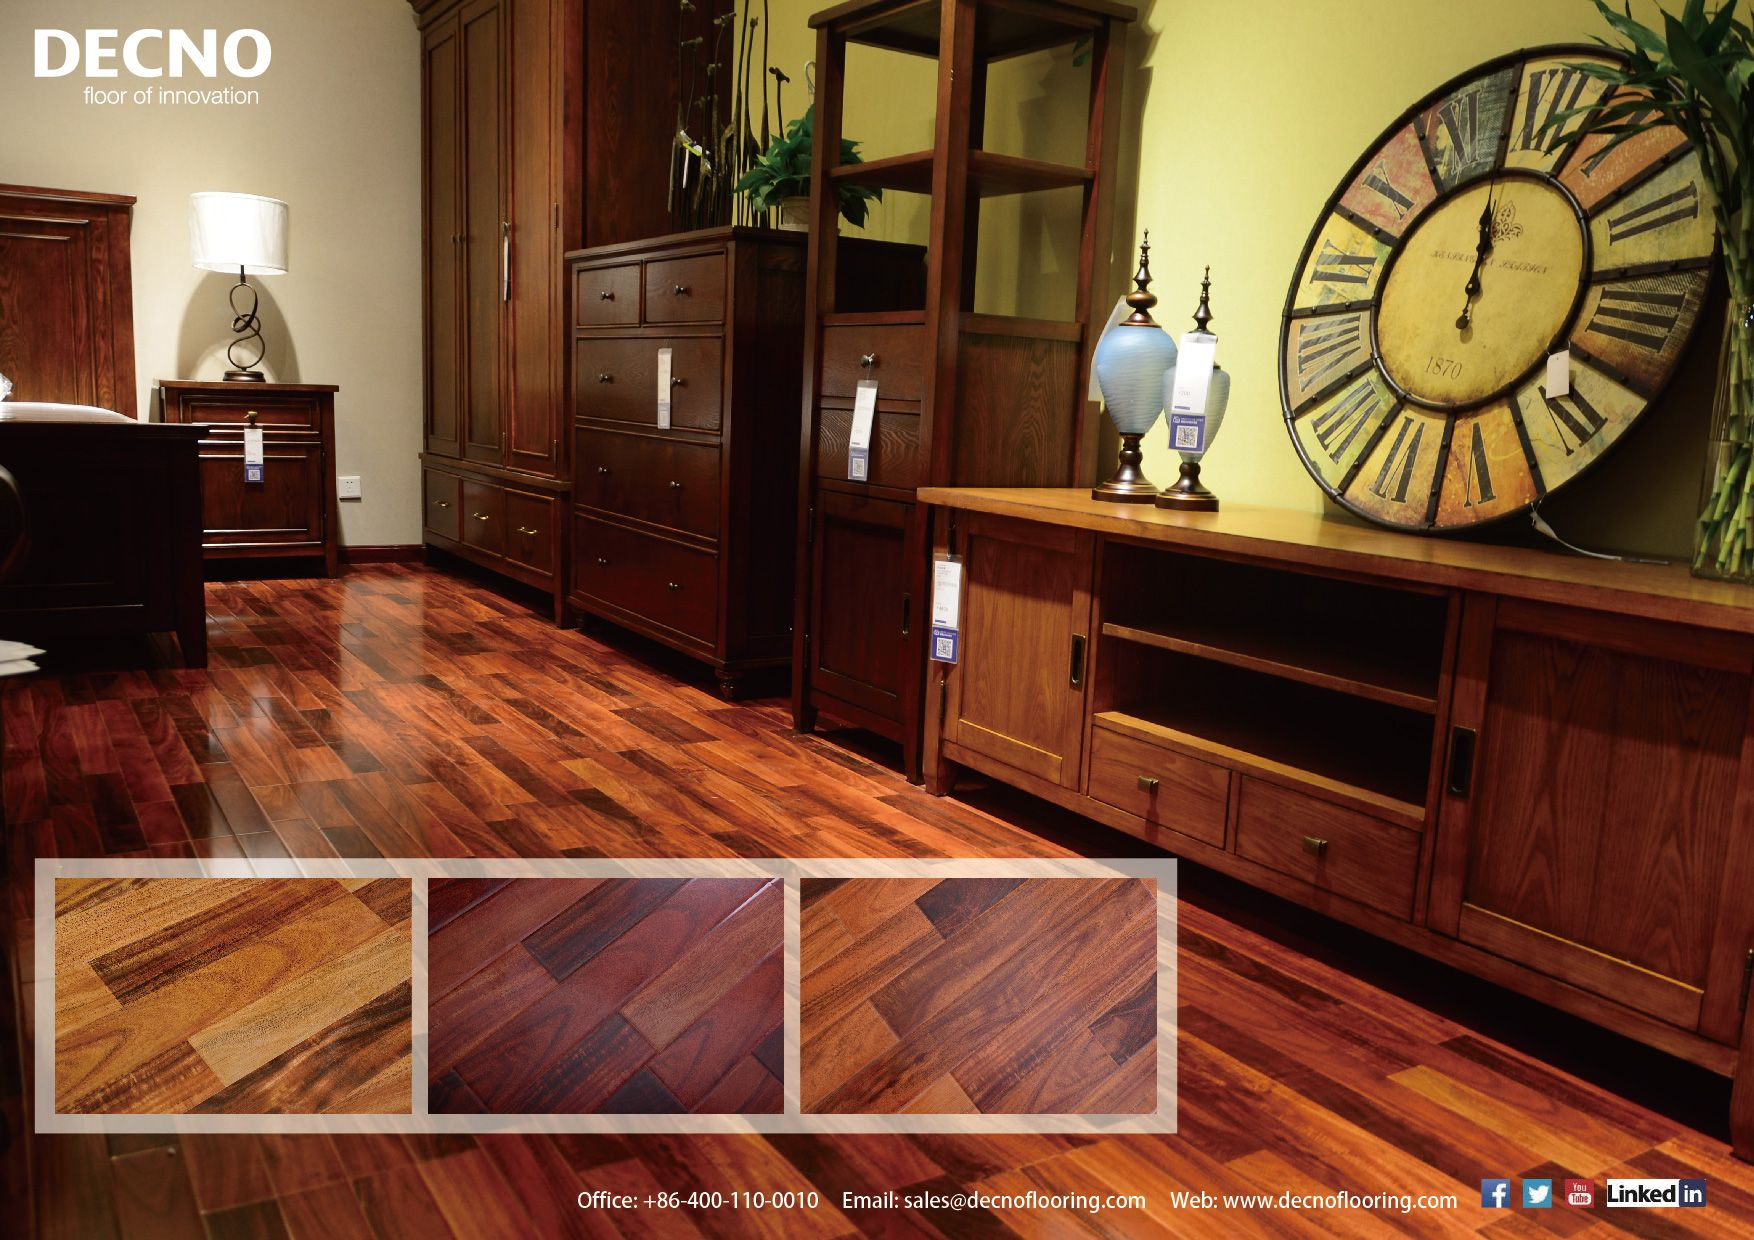 Laminate flooring is the innovative costeffective